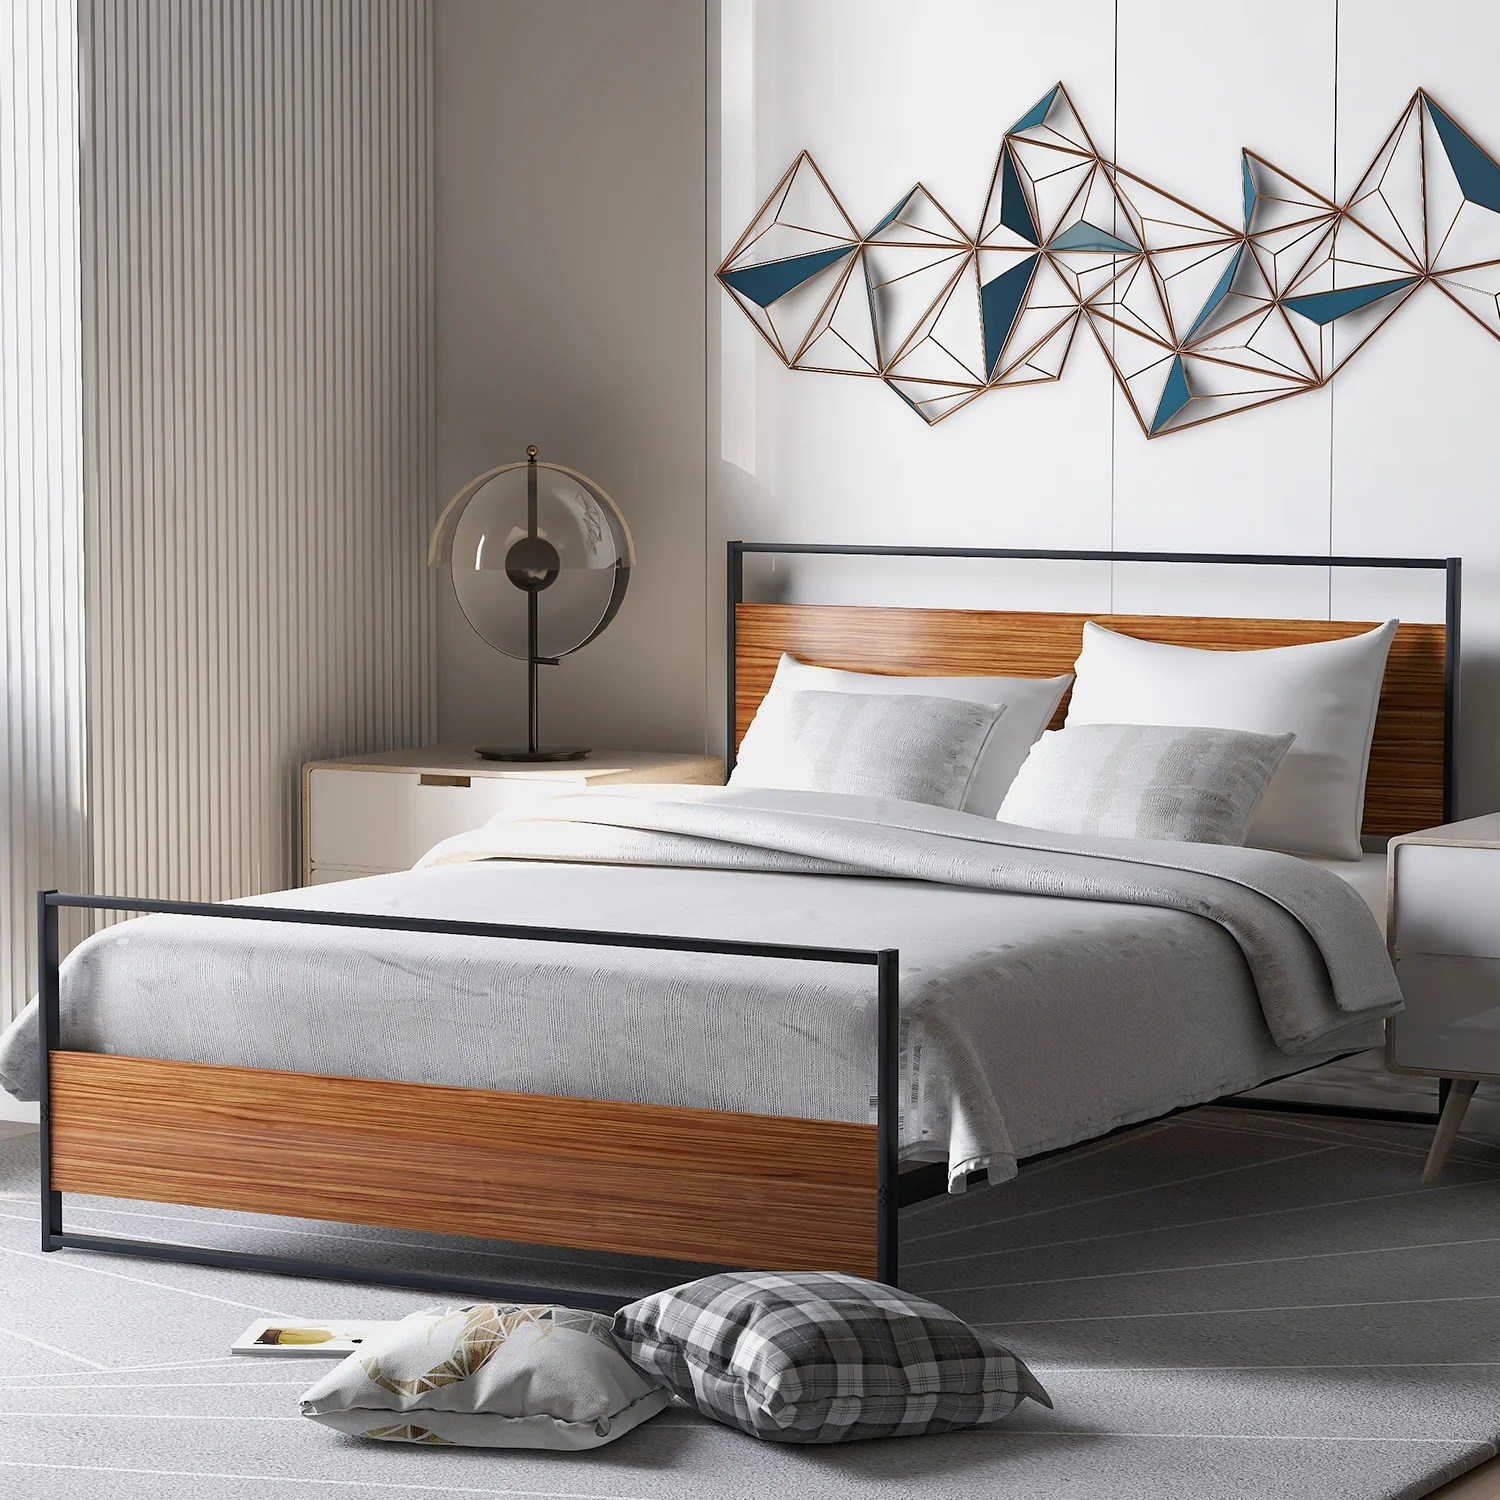 Latitude Run Full Size Metal And Wood Platform Bed Frame With Headboard And Footboard And Wooden Slat Support No Box Spring Needed For Bedroom Wayfair Ca